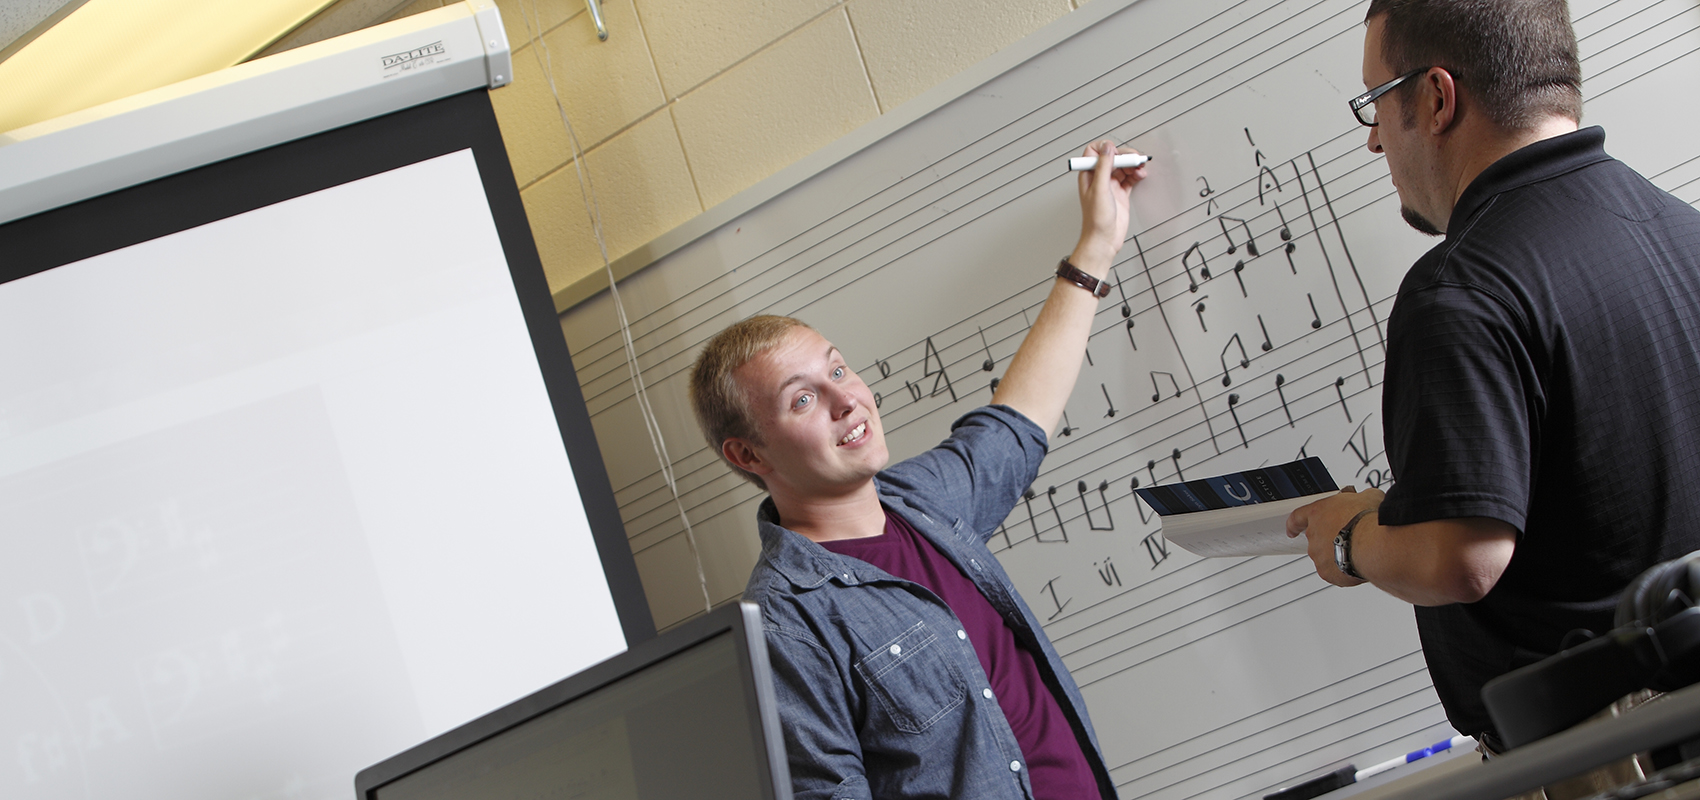 Dr. Jonathan Neiderhiser teaching a student during music theory class.